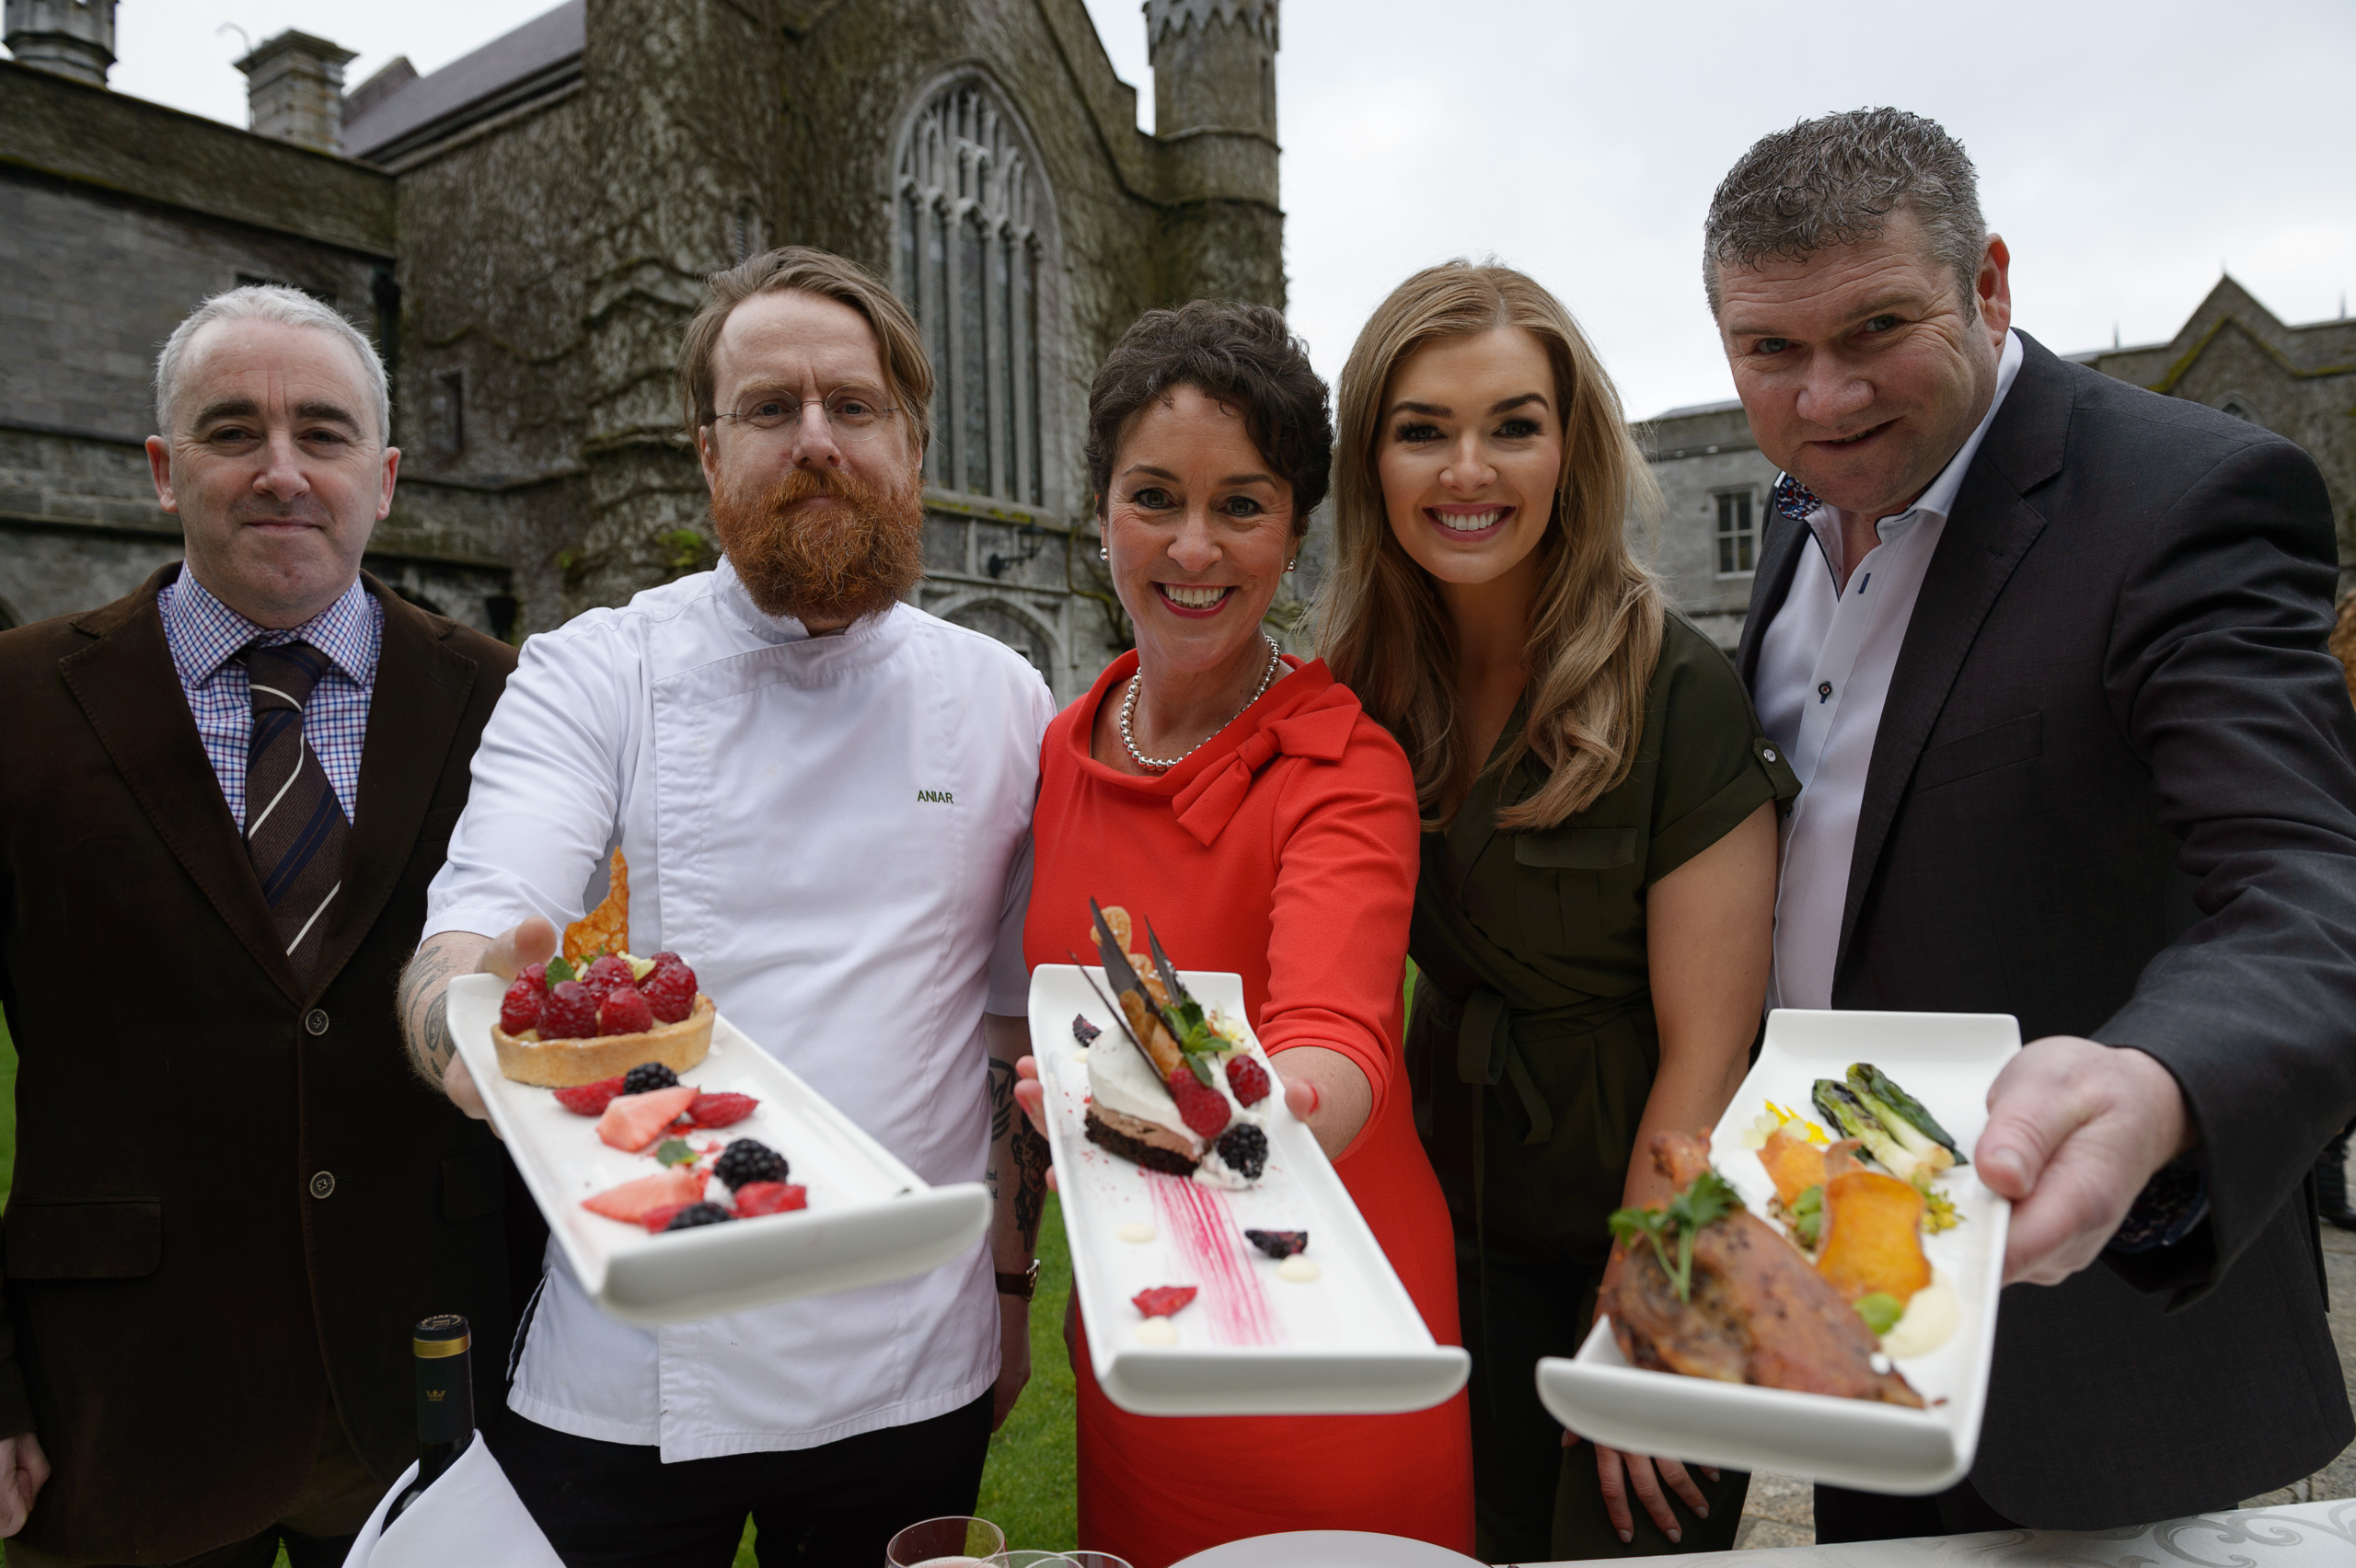 TG4's Cáitlín Nic Aoidh brings sunlight on the announcement of touRRoir18 Photo: Andrew Downes, XPOSURE